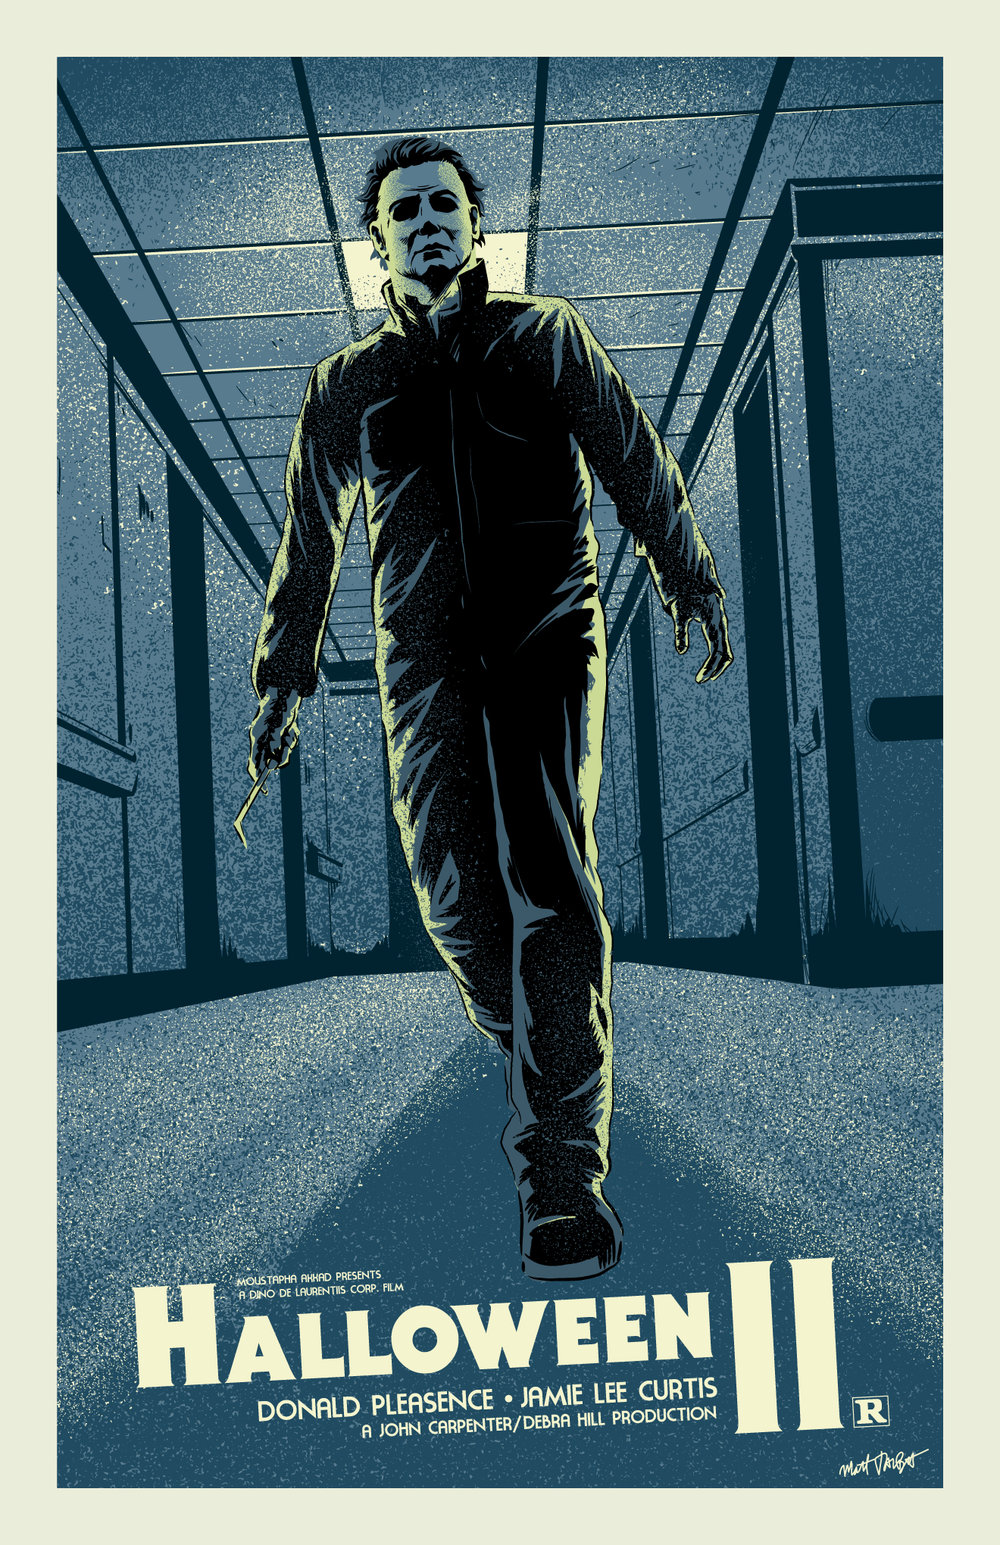 Halloween II (1981) poster by Matt Talbot